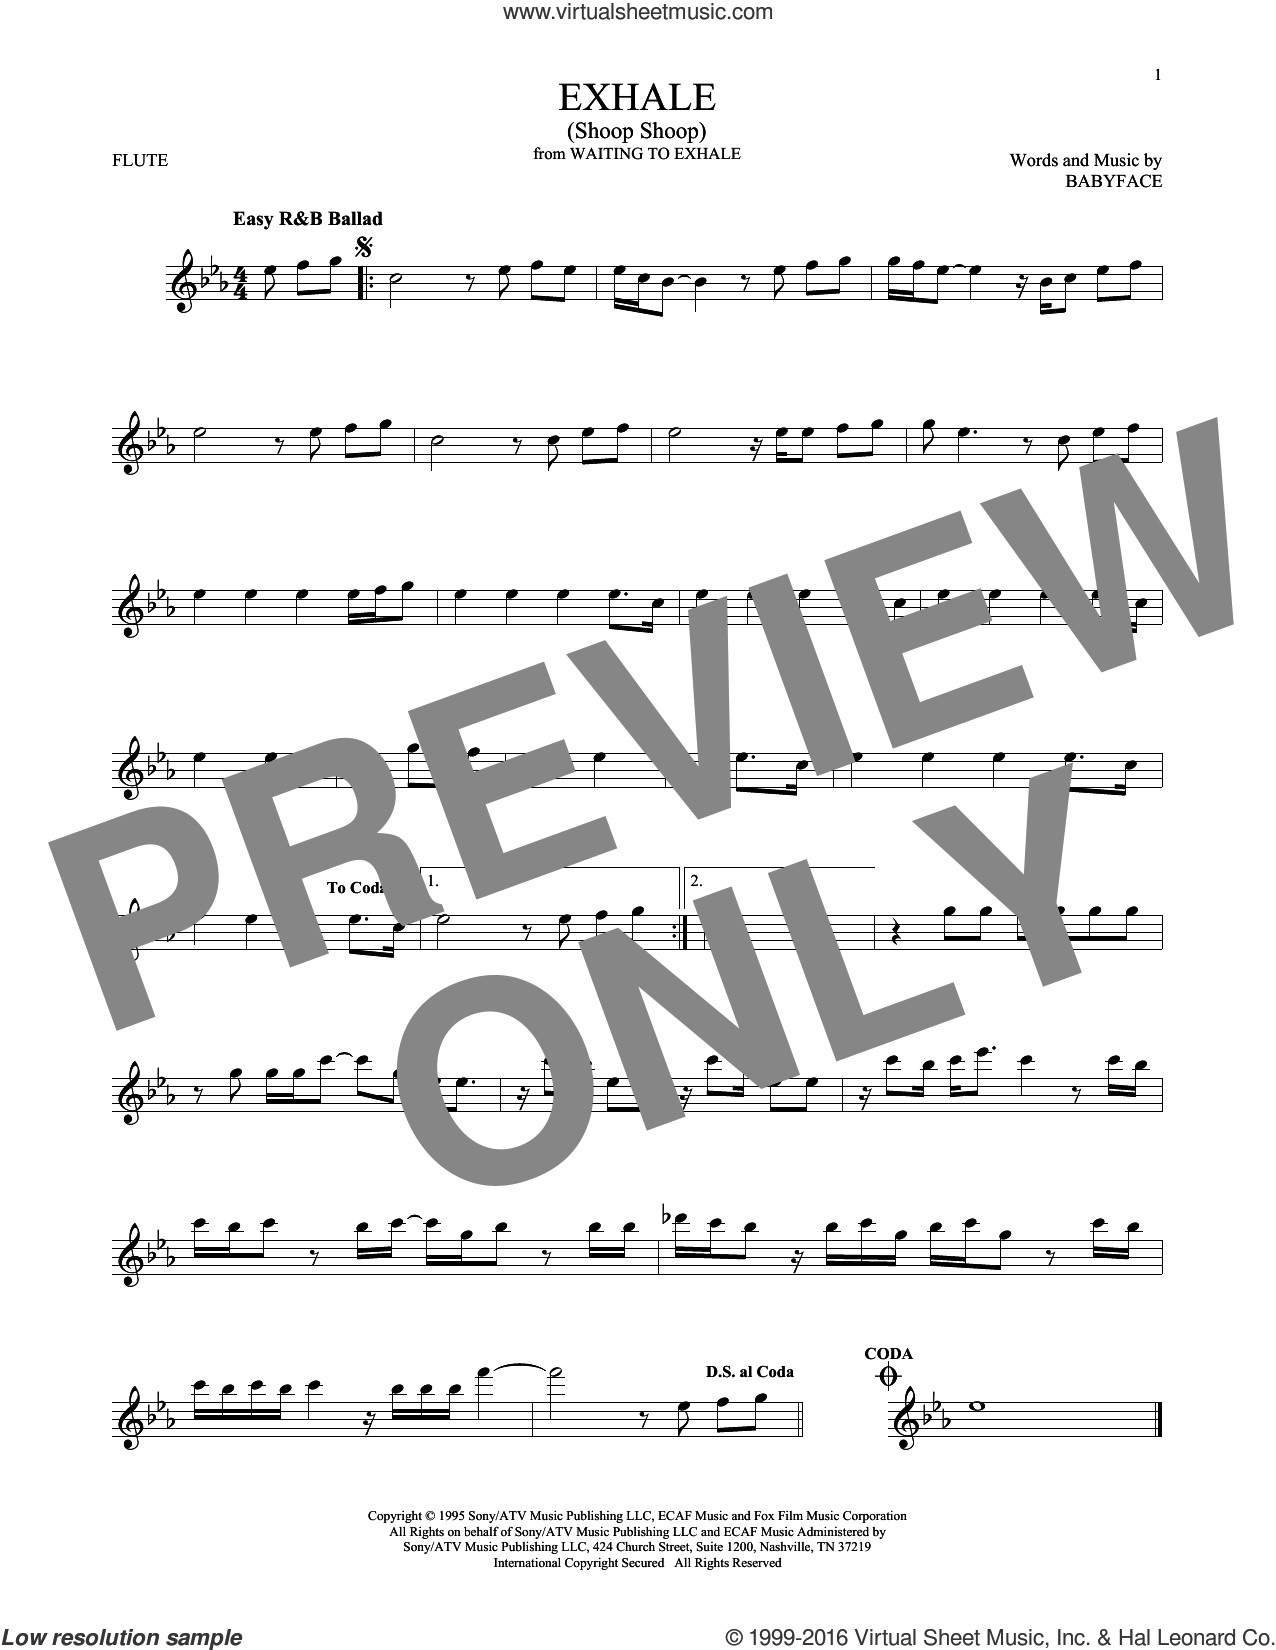 Exhale (Shoop Shoop) sheet music for flute solo by Whitney Houston and Babyface, intermediate skill level